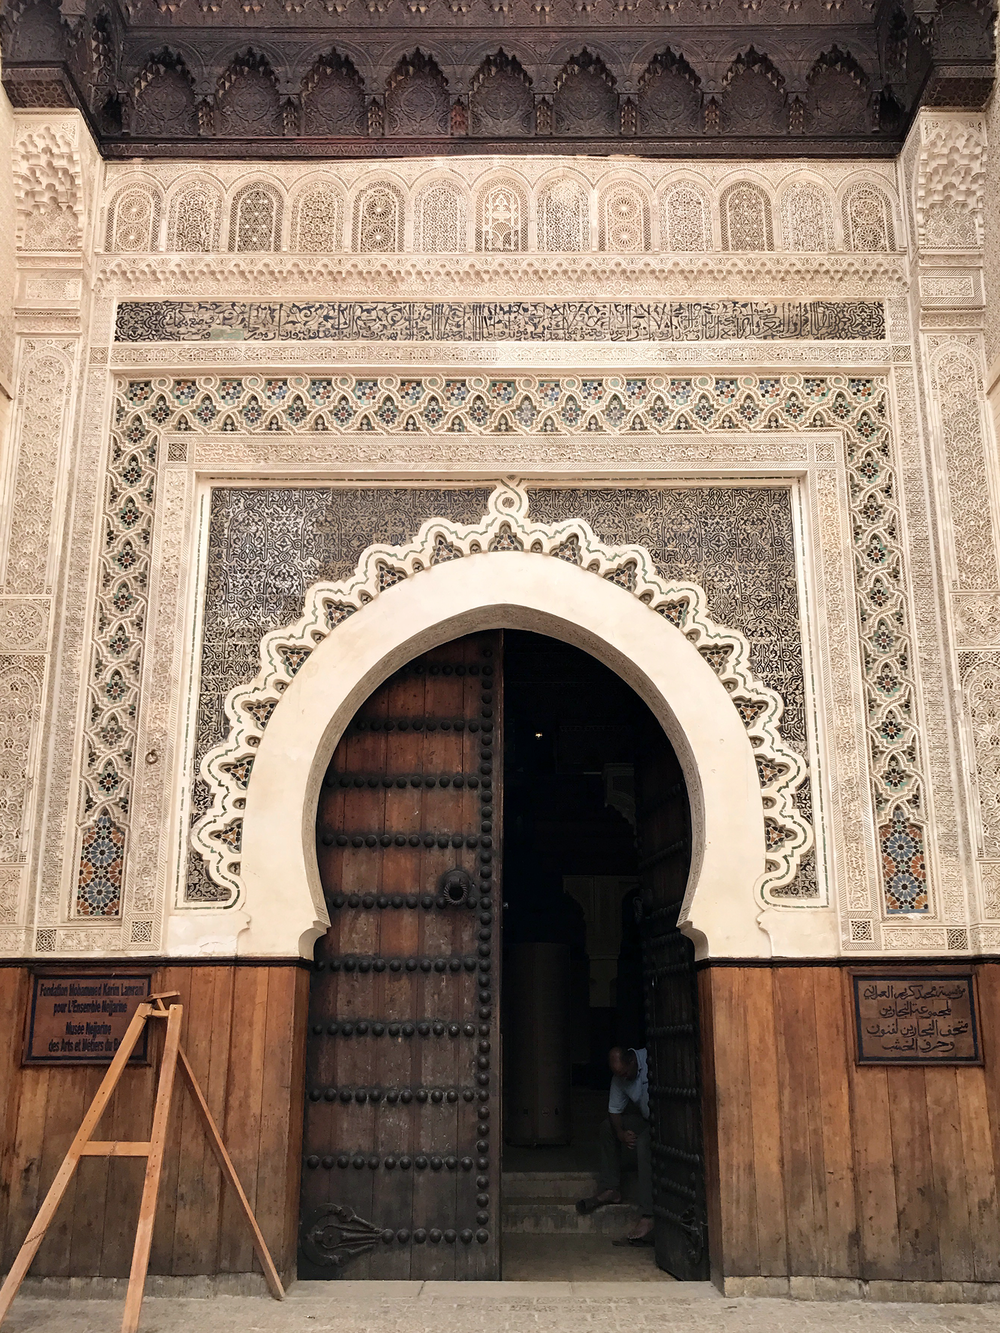 Woodworking Museum Entrance in Fez Morocco | Photos of Morocco